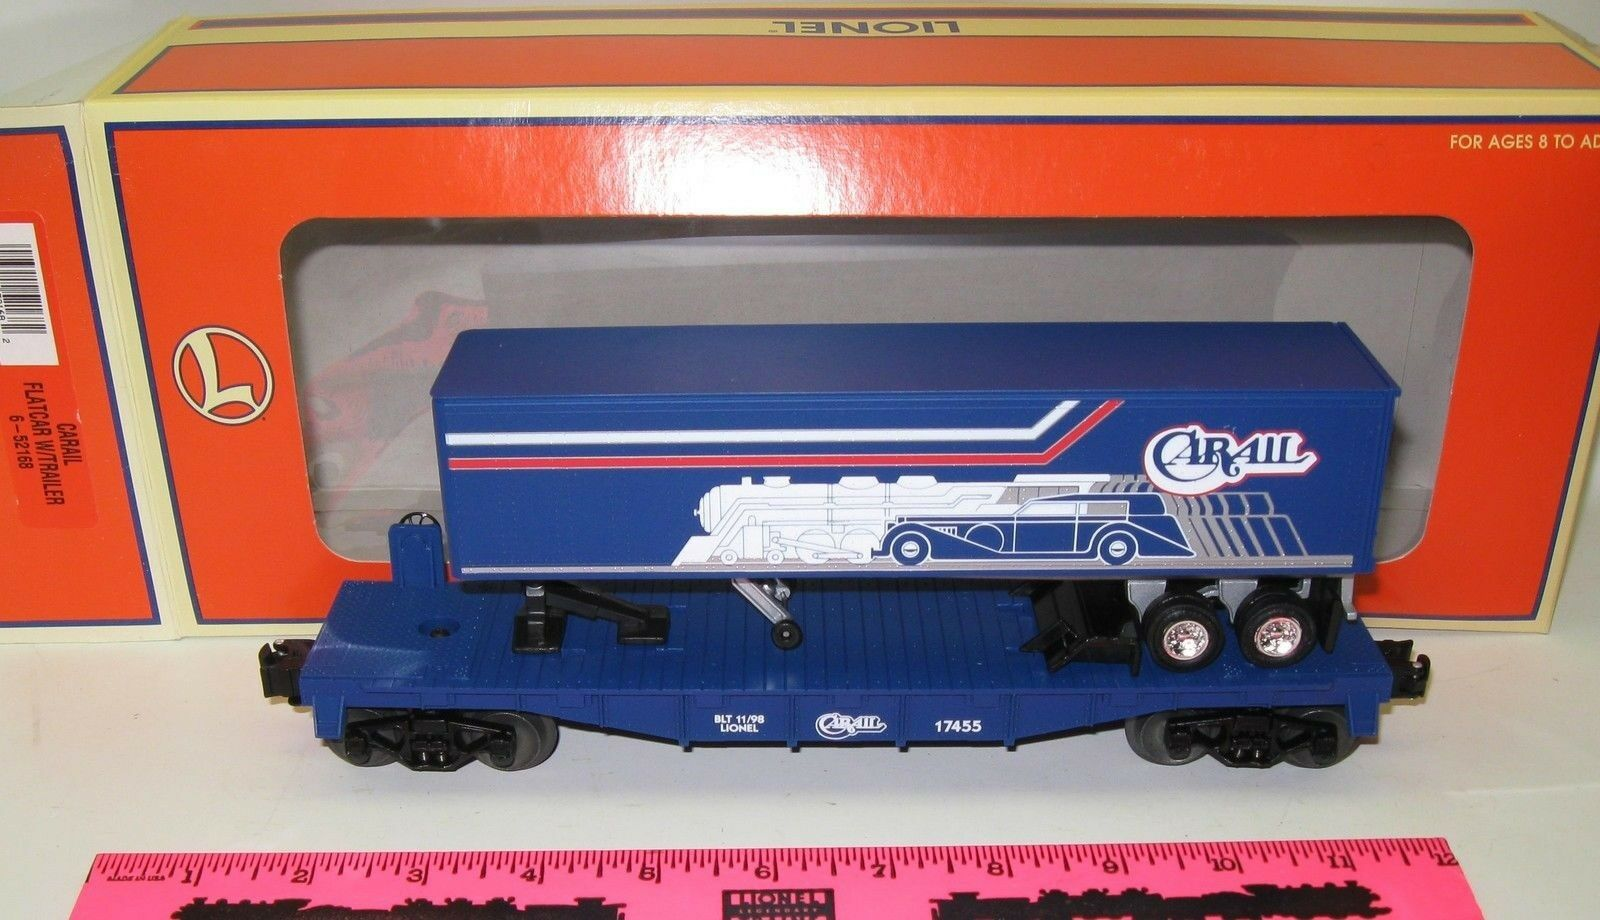 New Lionel 6-52168 Carail Flatcar With Trailer  17455